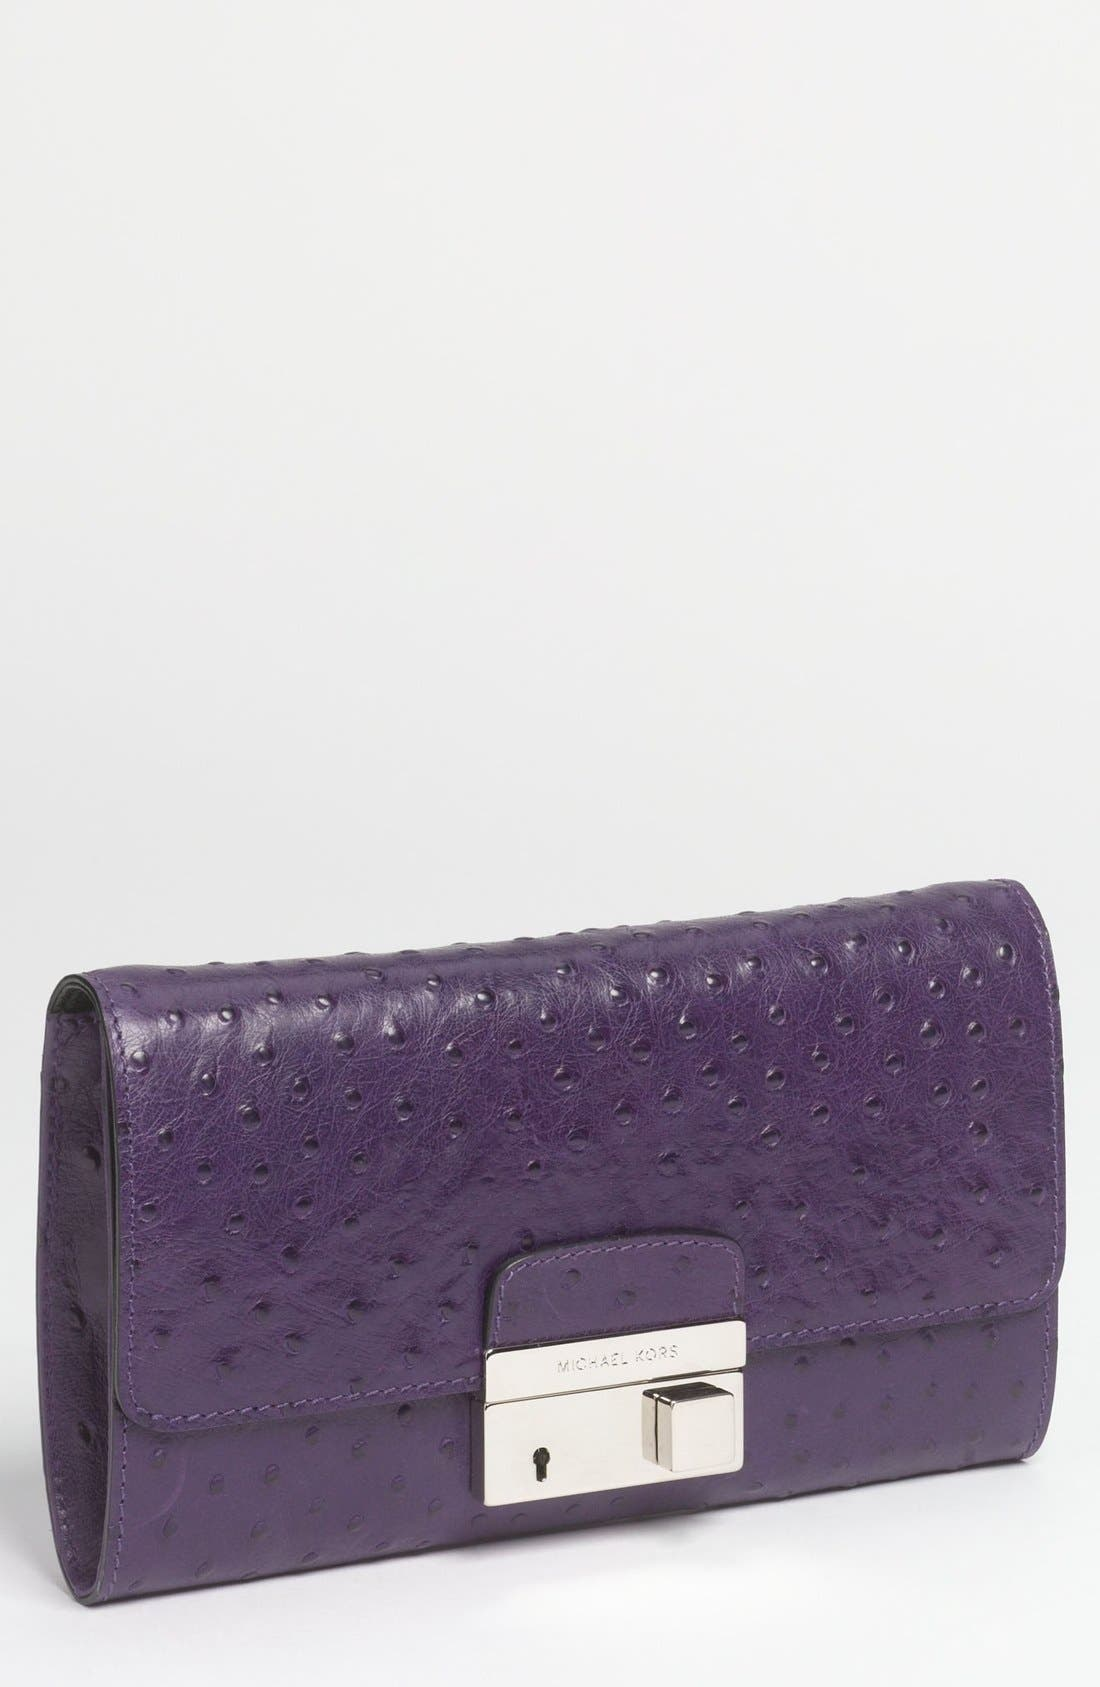 Alternate Image 1 Selected - Michael Kors 'Gia' Ostrich Embossed Leather Clutch